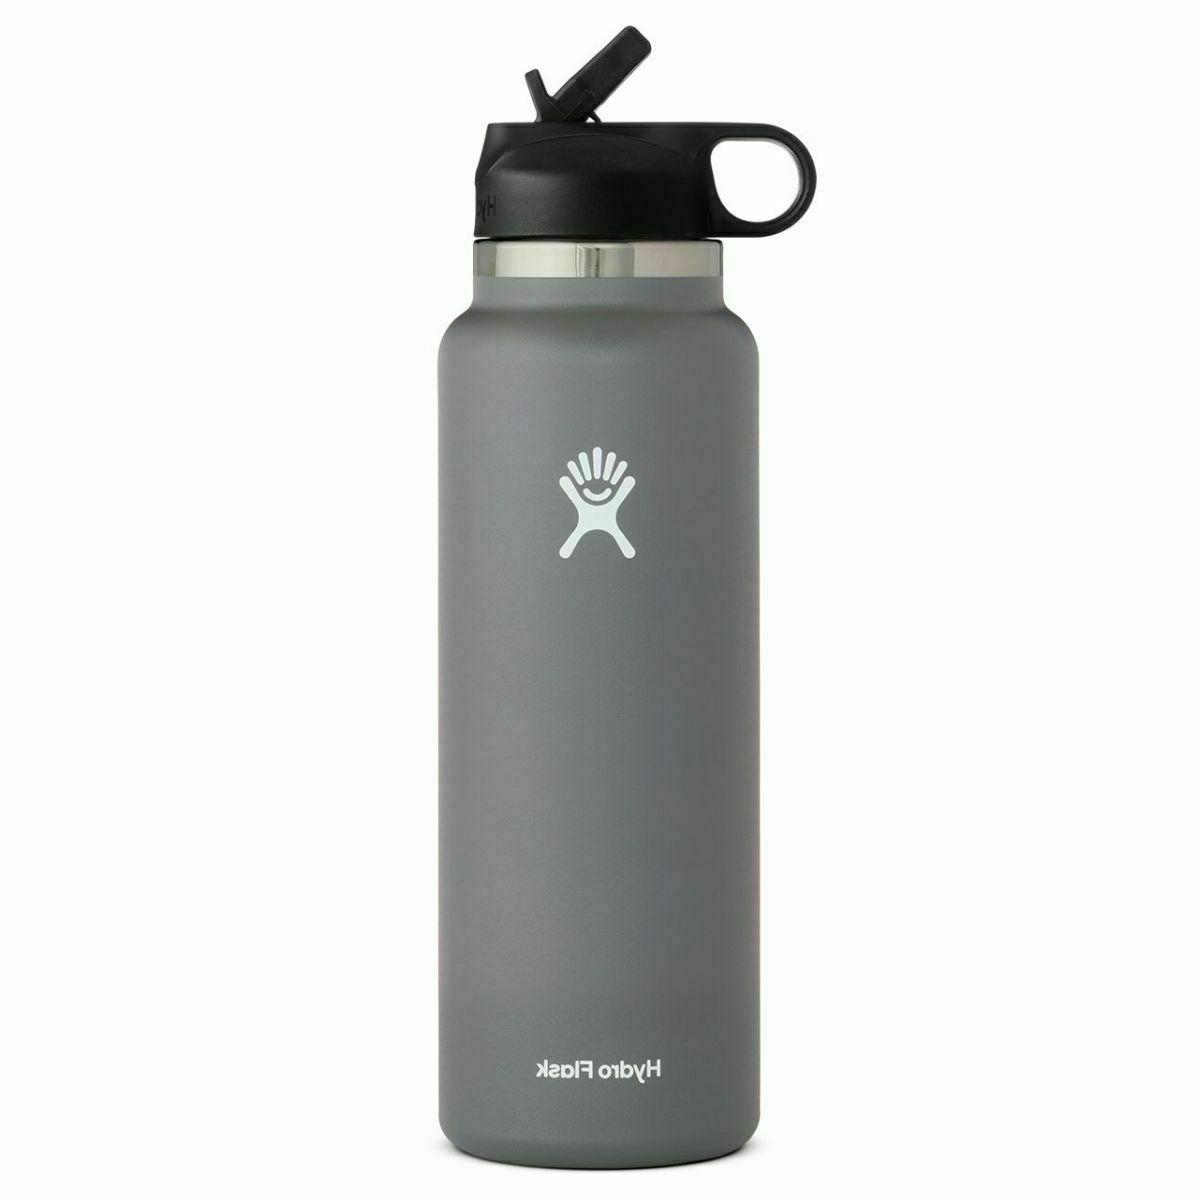 32oz Steel Water Bottle New with Straw Lid